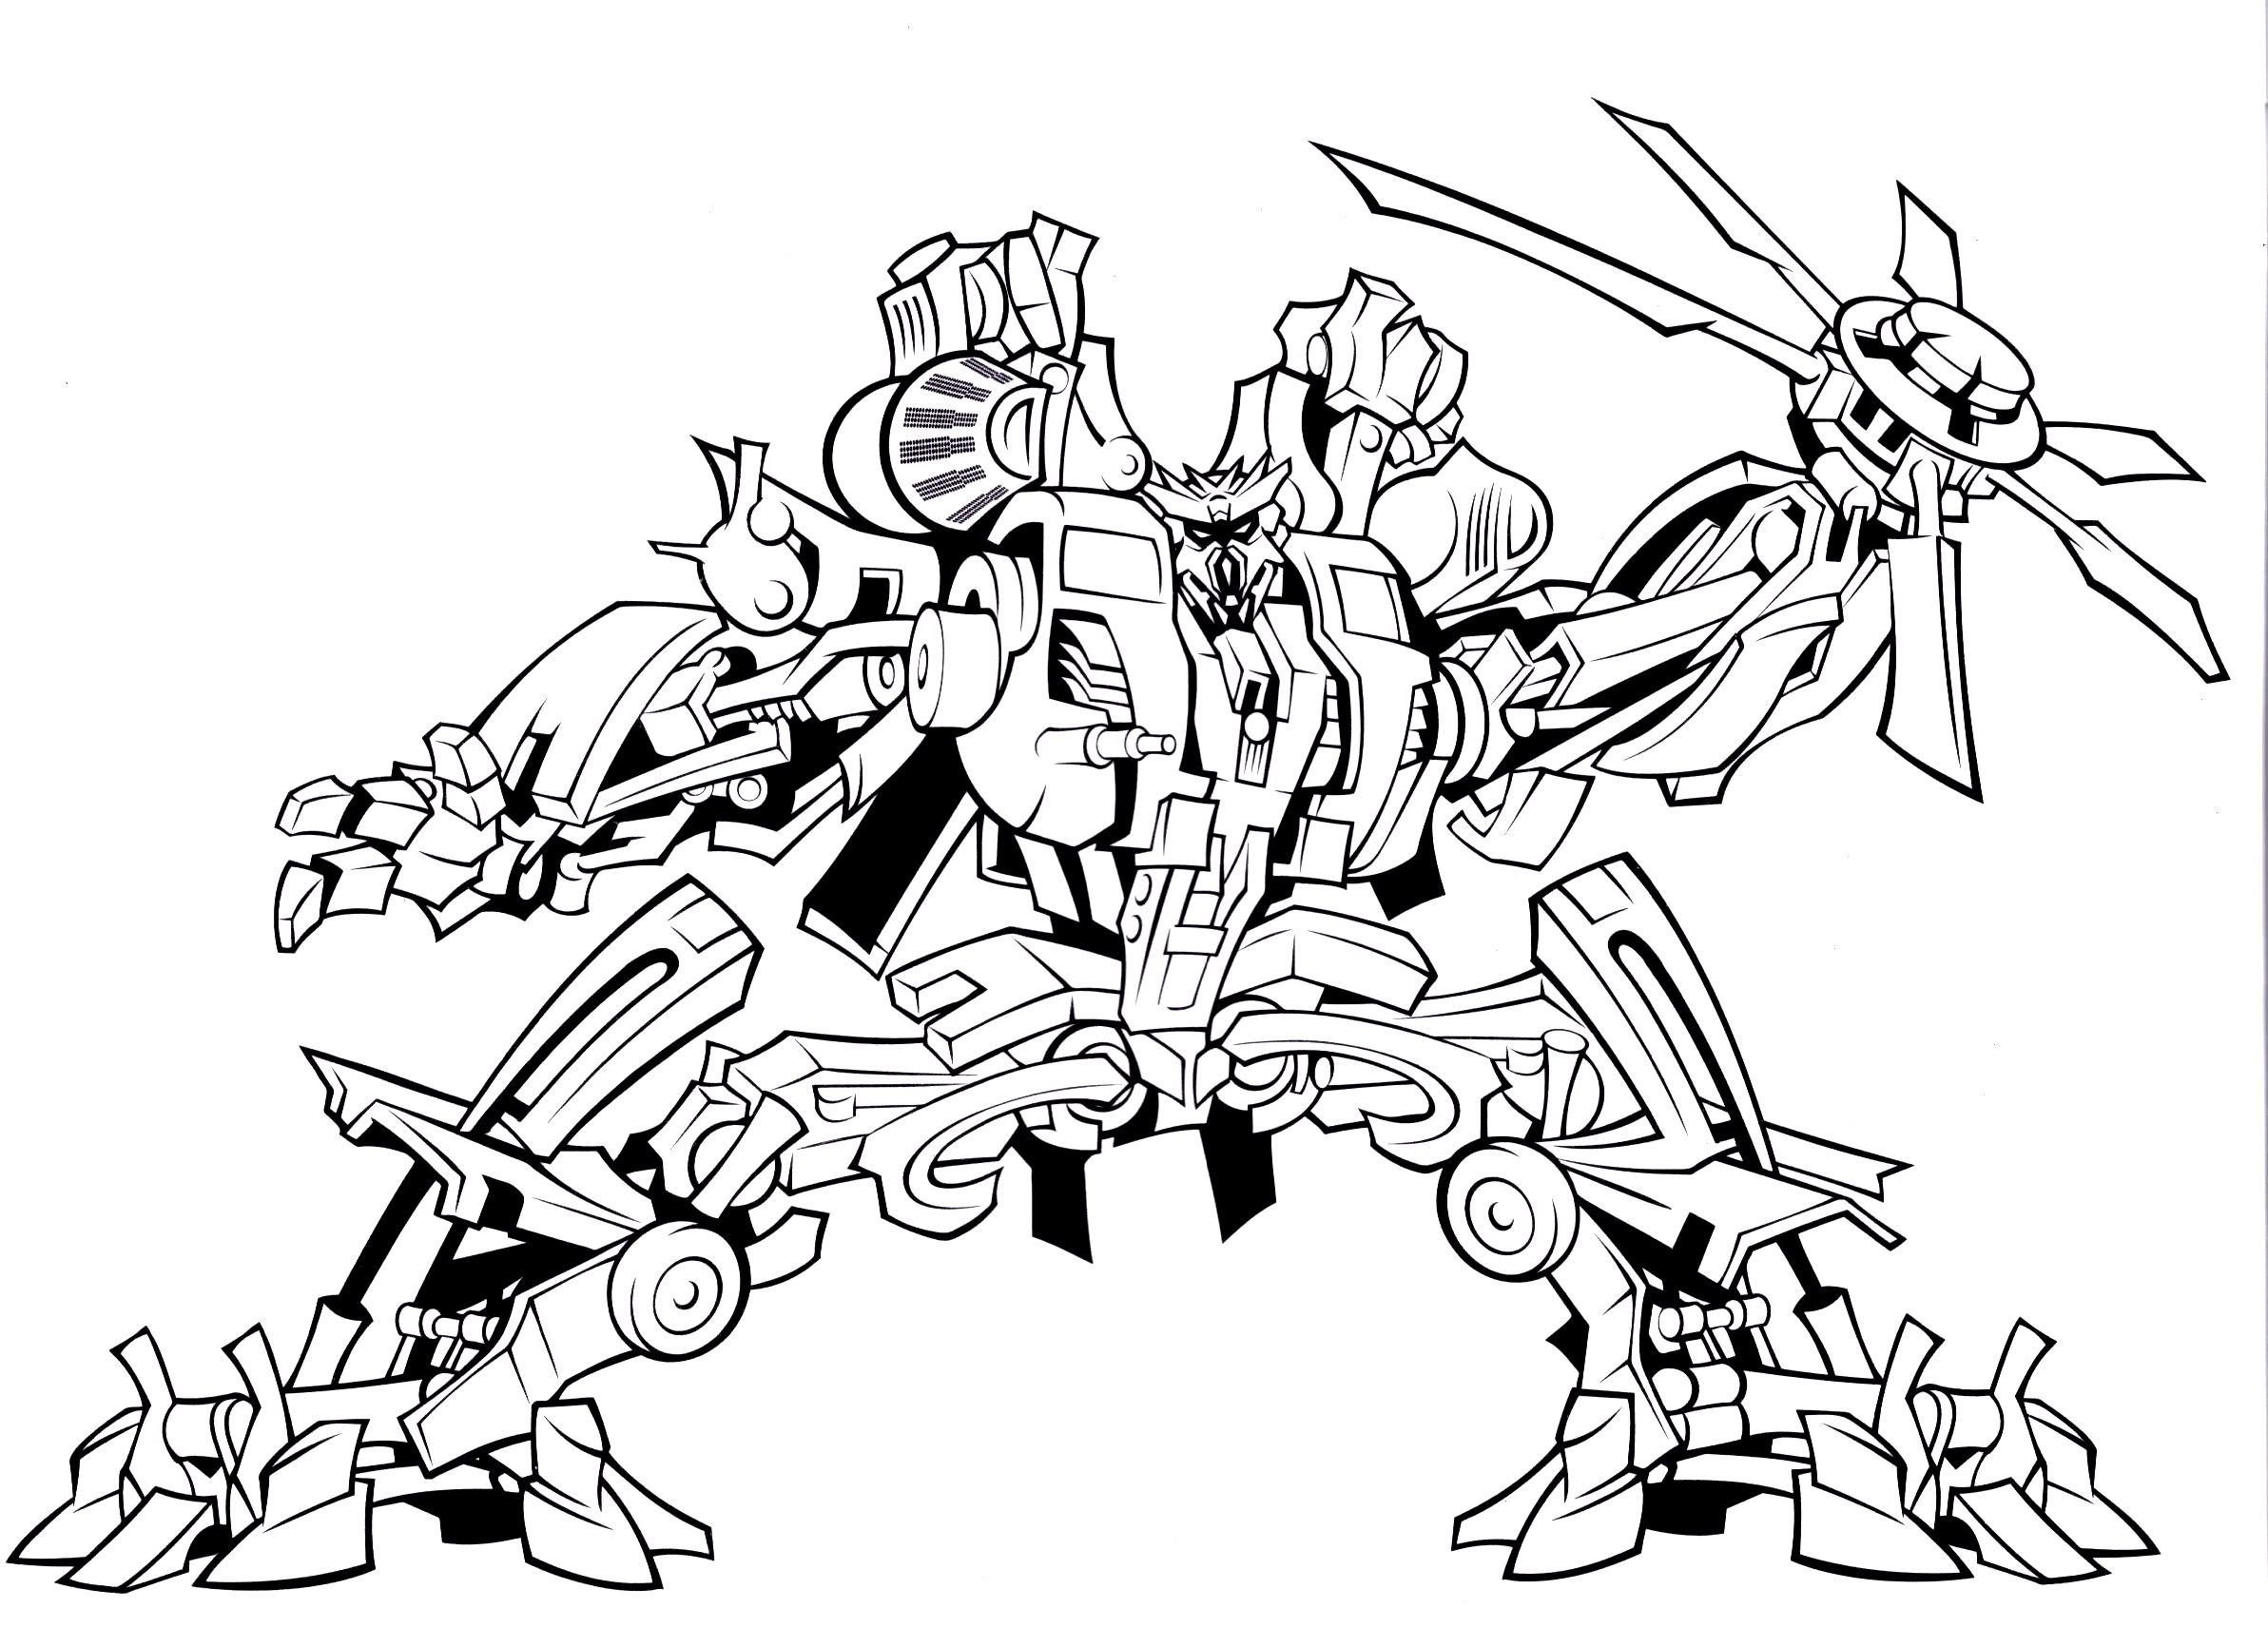 bulkhead transformer coloring page - Transformers Coloring Pages